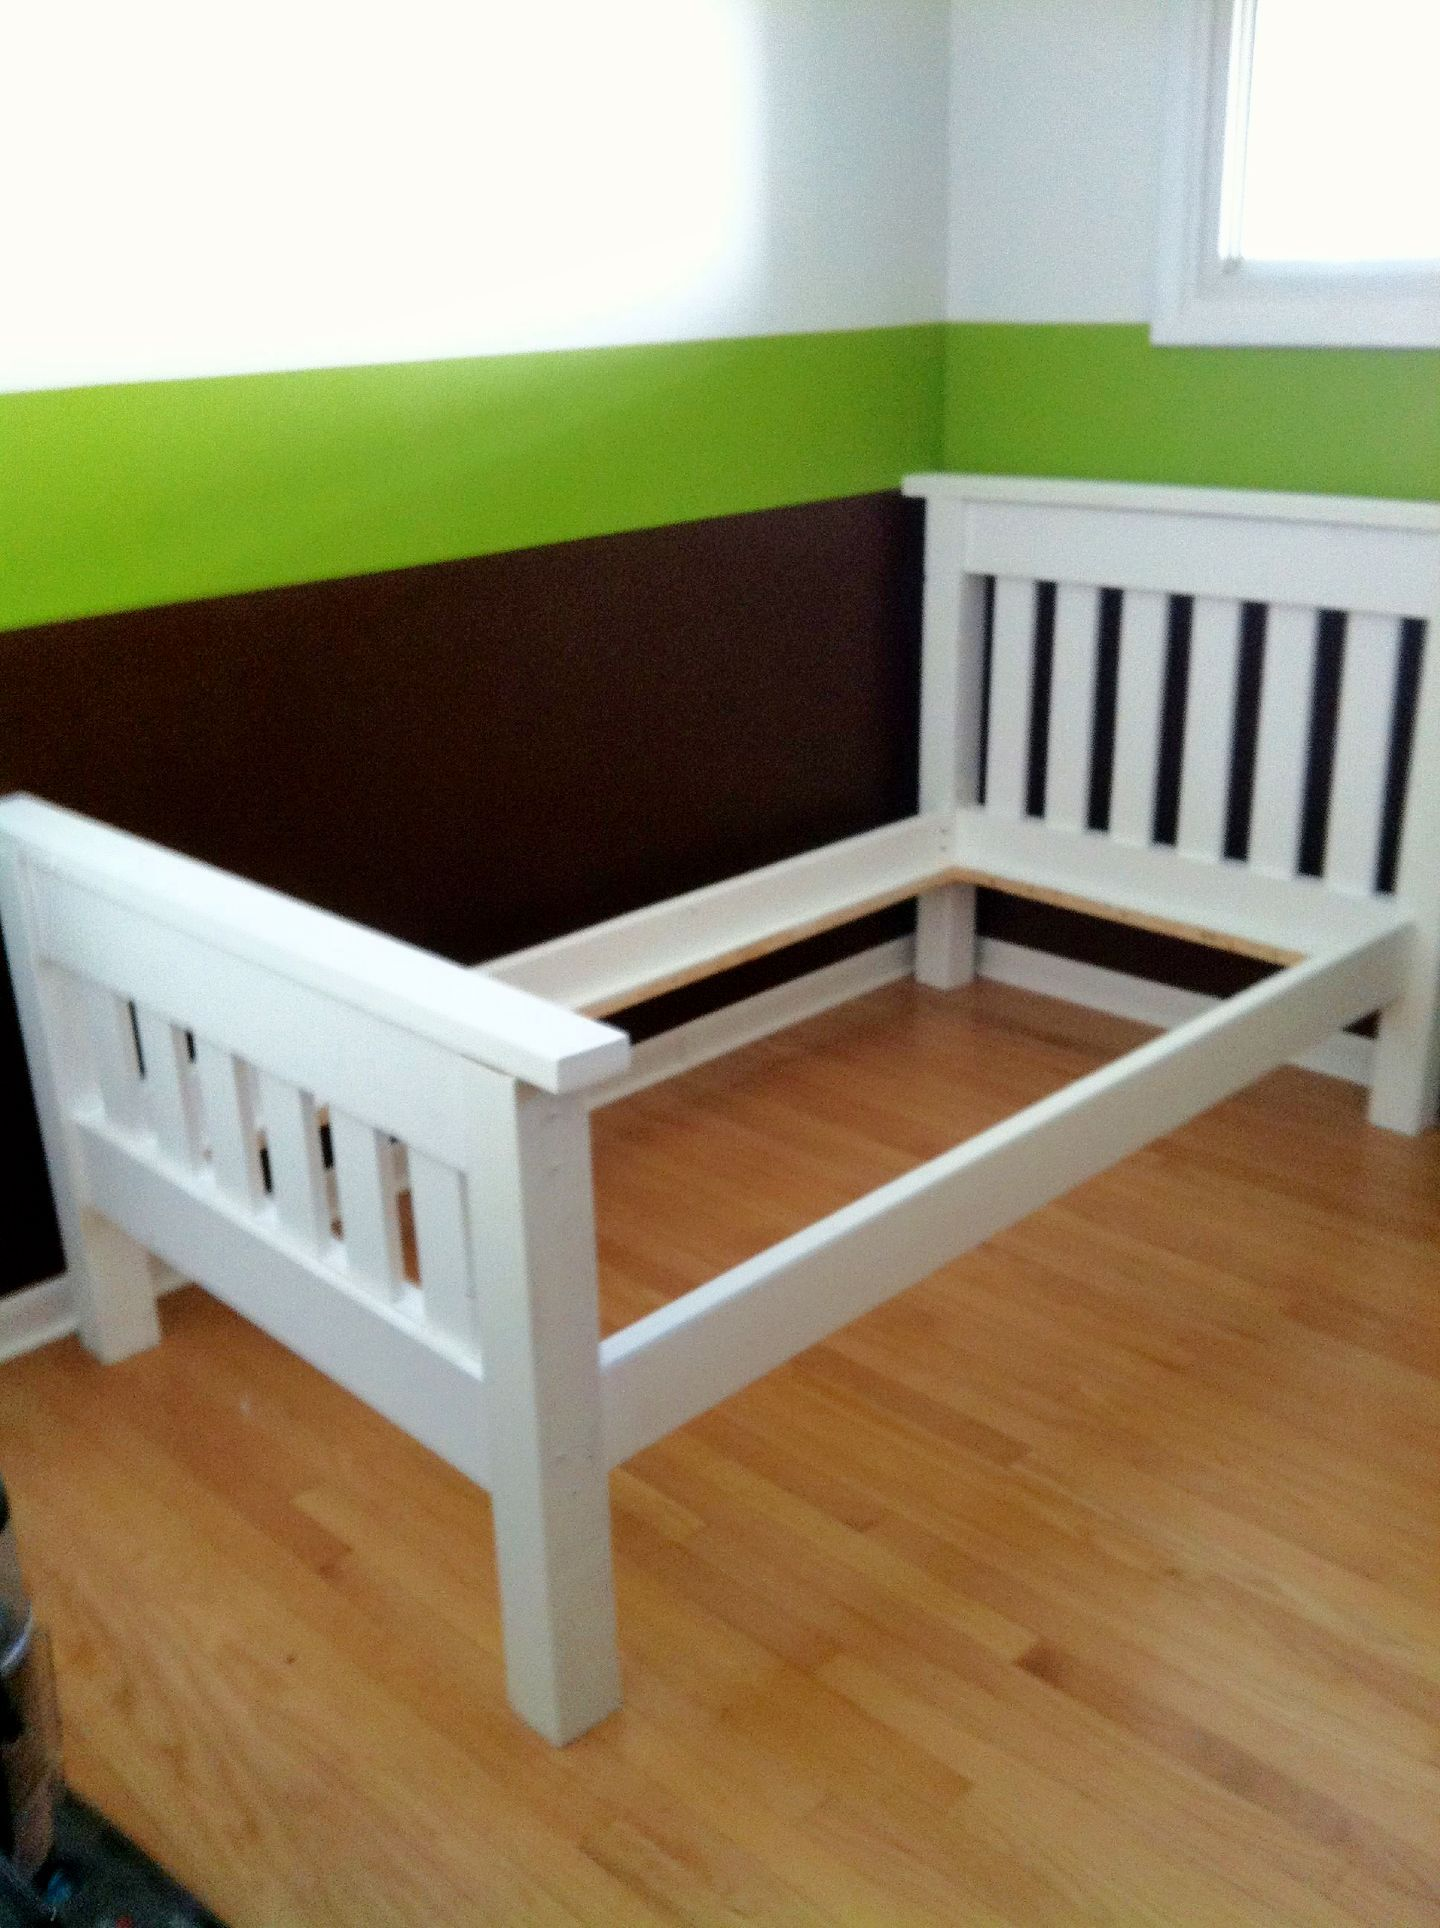 finished the simple bed twin do it yourself home projects from ana white we r going to. Black Bedroom Furniture Sets. Home Design Ideas